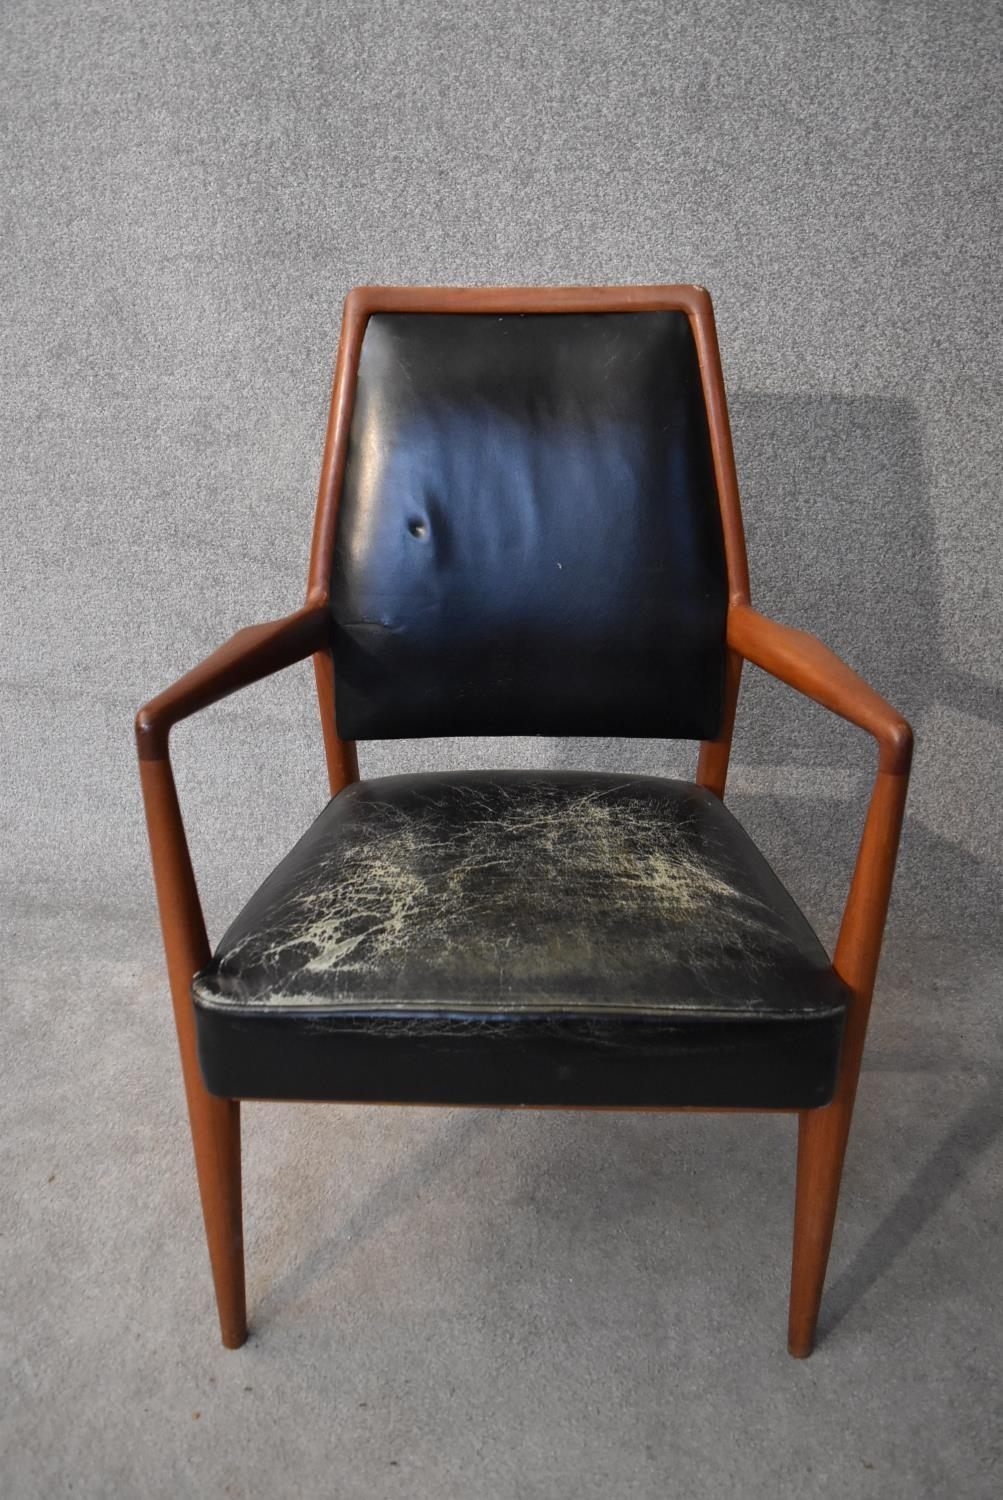 A mid 20th century vintage Danish teak framed armchair in leather upholstery. H.98x60cm